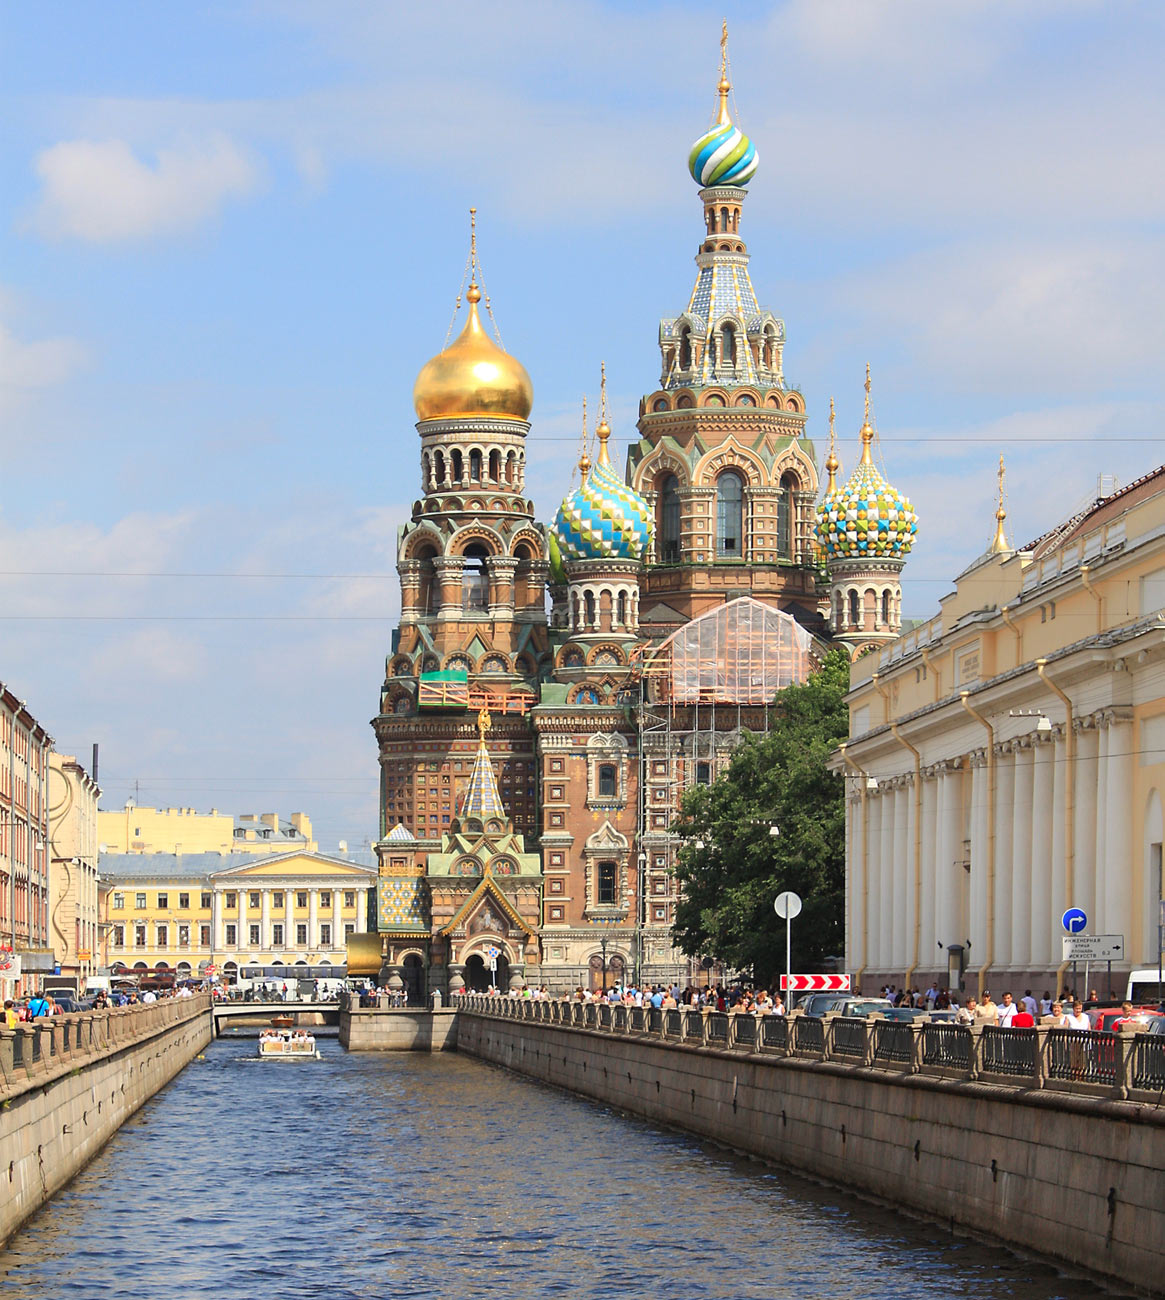 Church on Spilt Blood and Griboyedov Canal in St. Petersburg, Russia